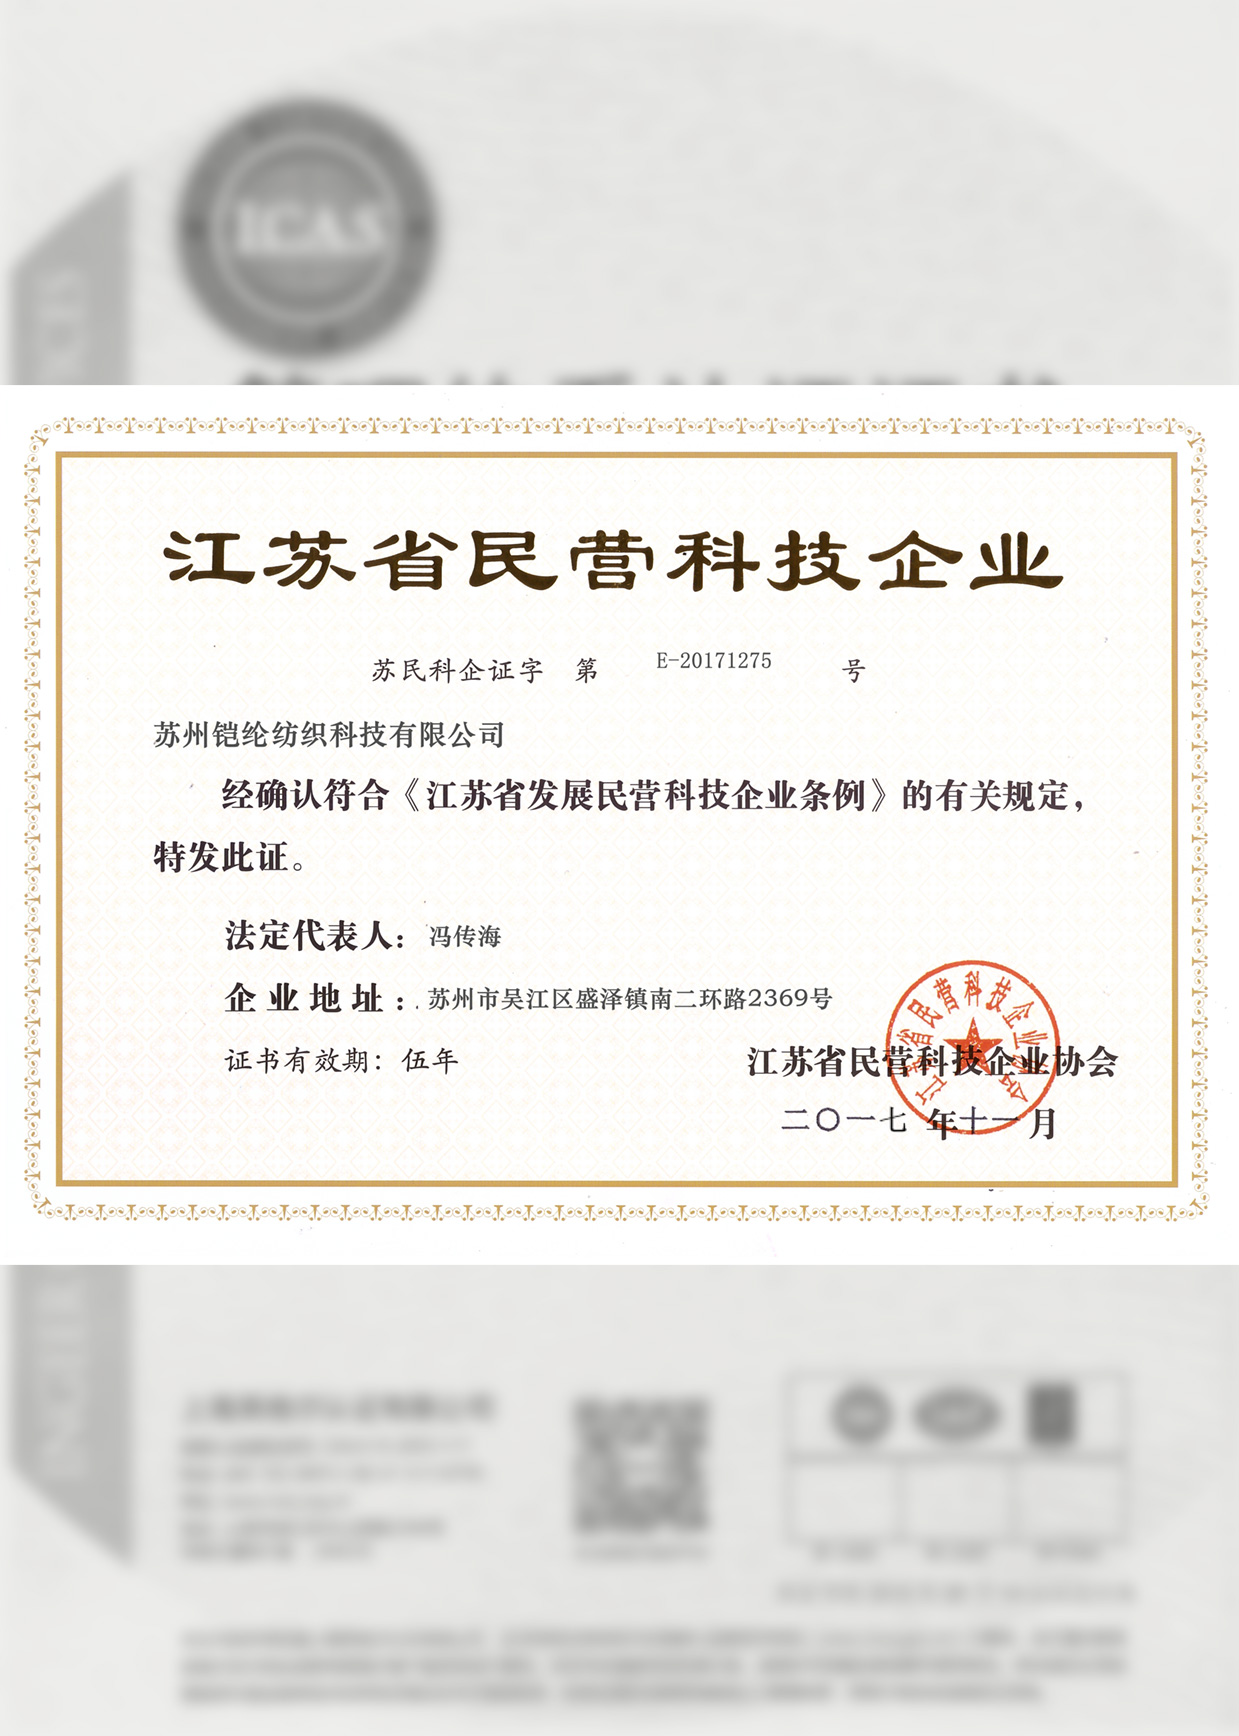 Private Science and Technology Enterprises in Jiangsu Province